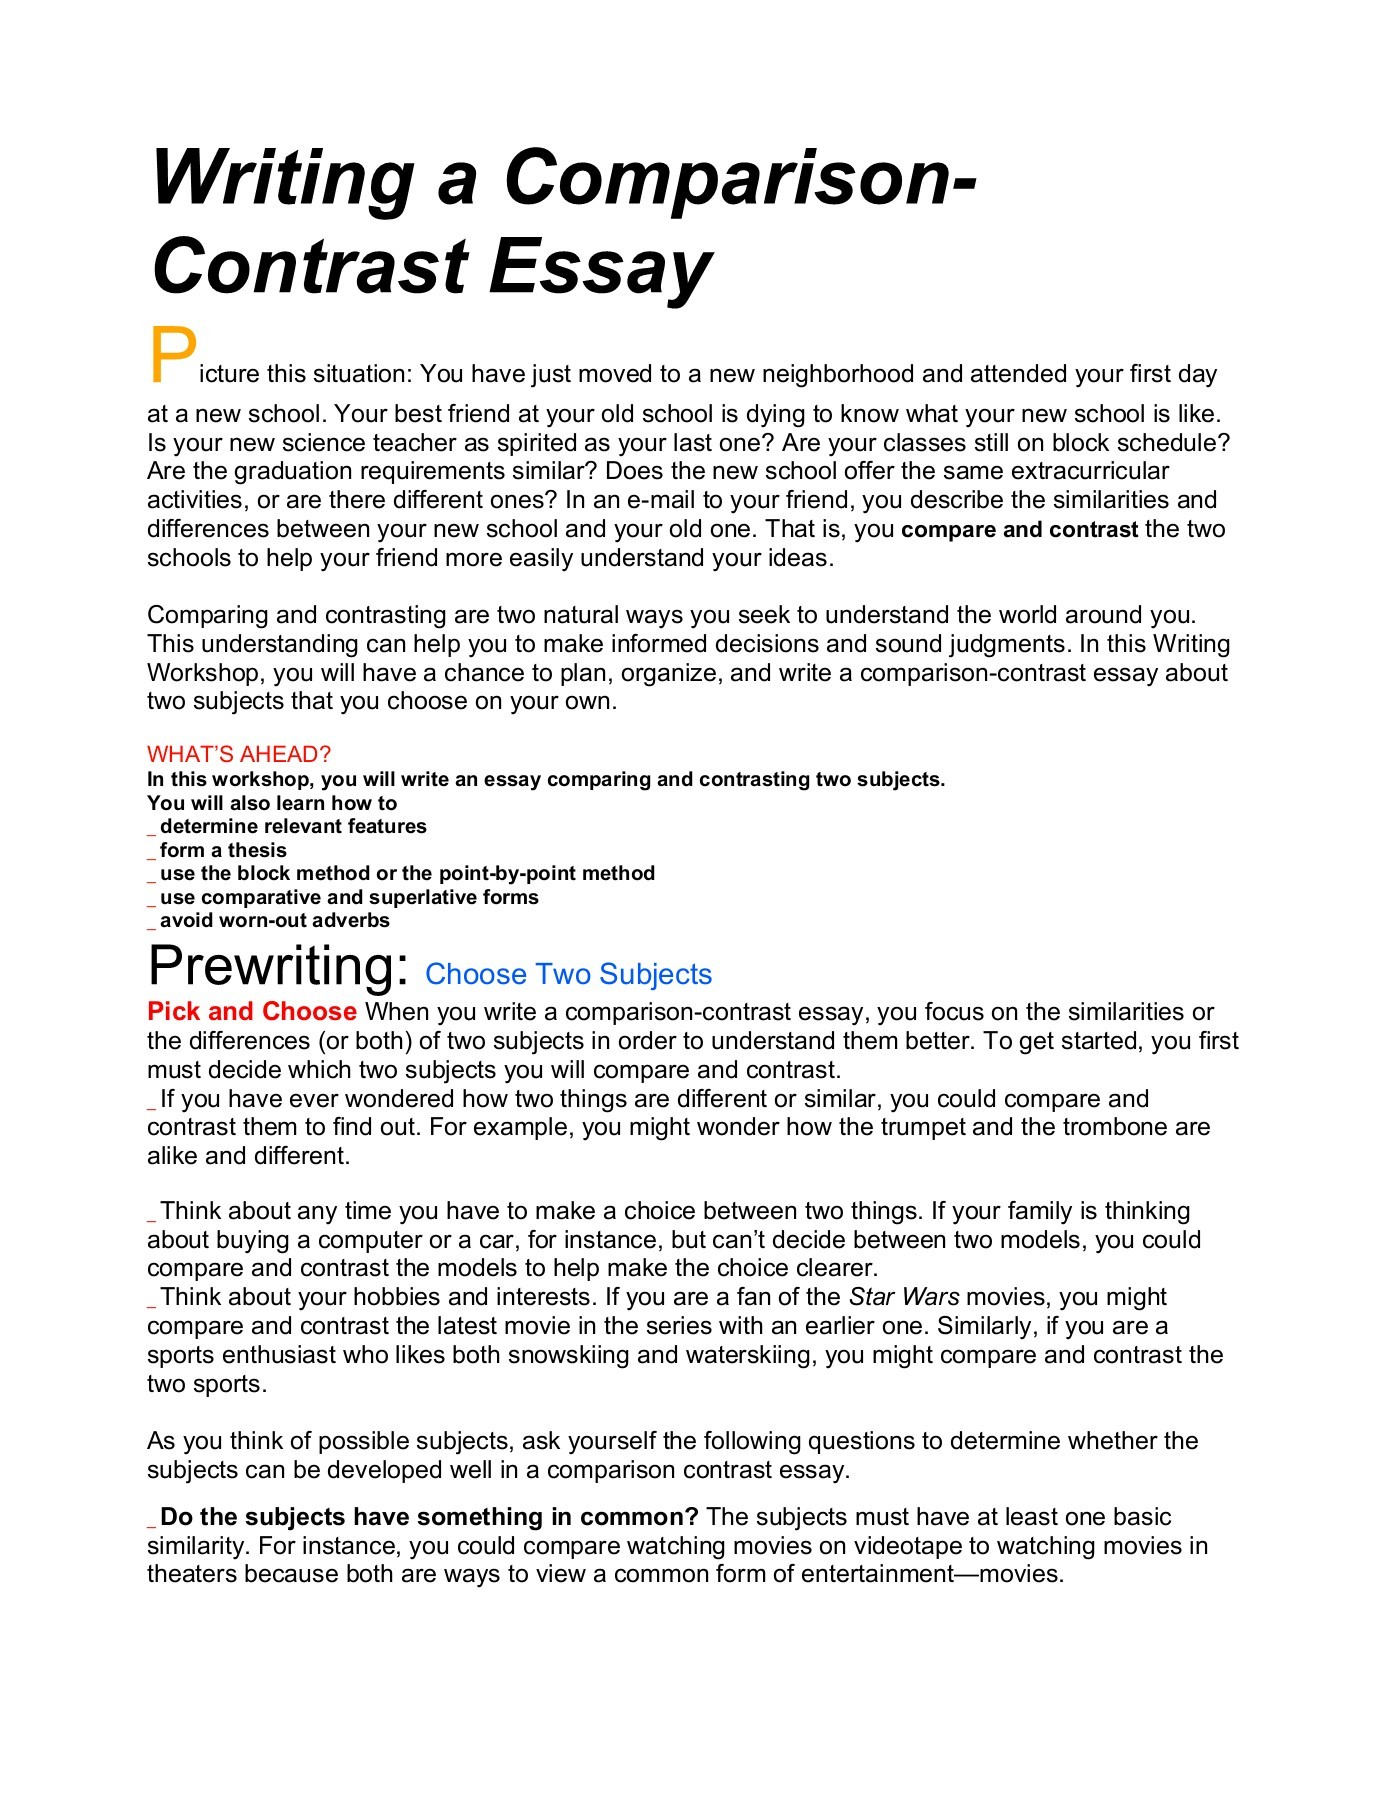 006 Essay Example Comparison And Awful Contrast Examples Point-by-point Full